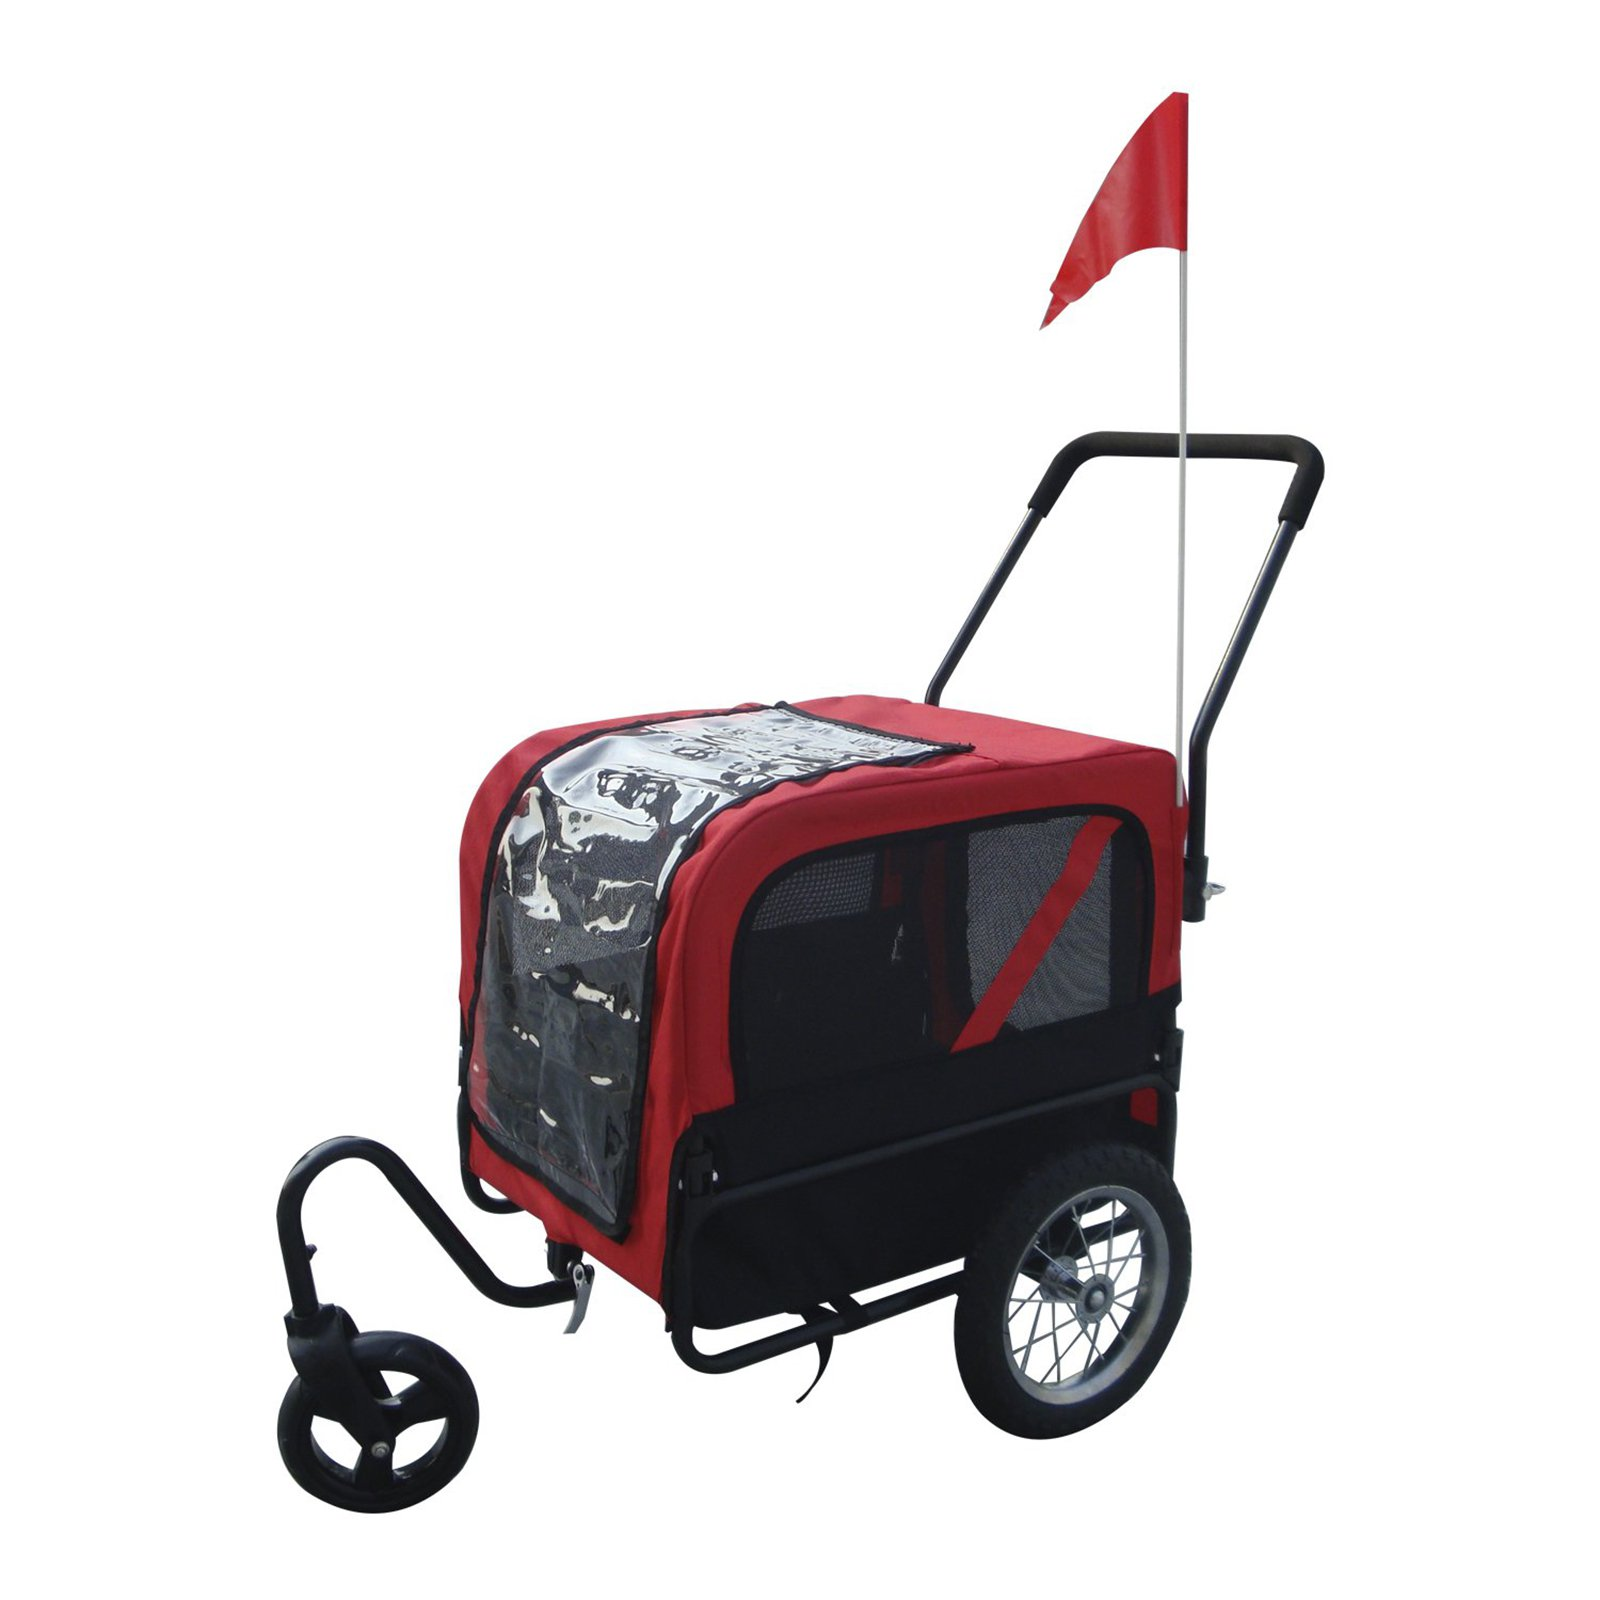 Aosom Elite Jr Dog Bike Trailer and Stroller with Swivel Wheel